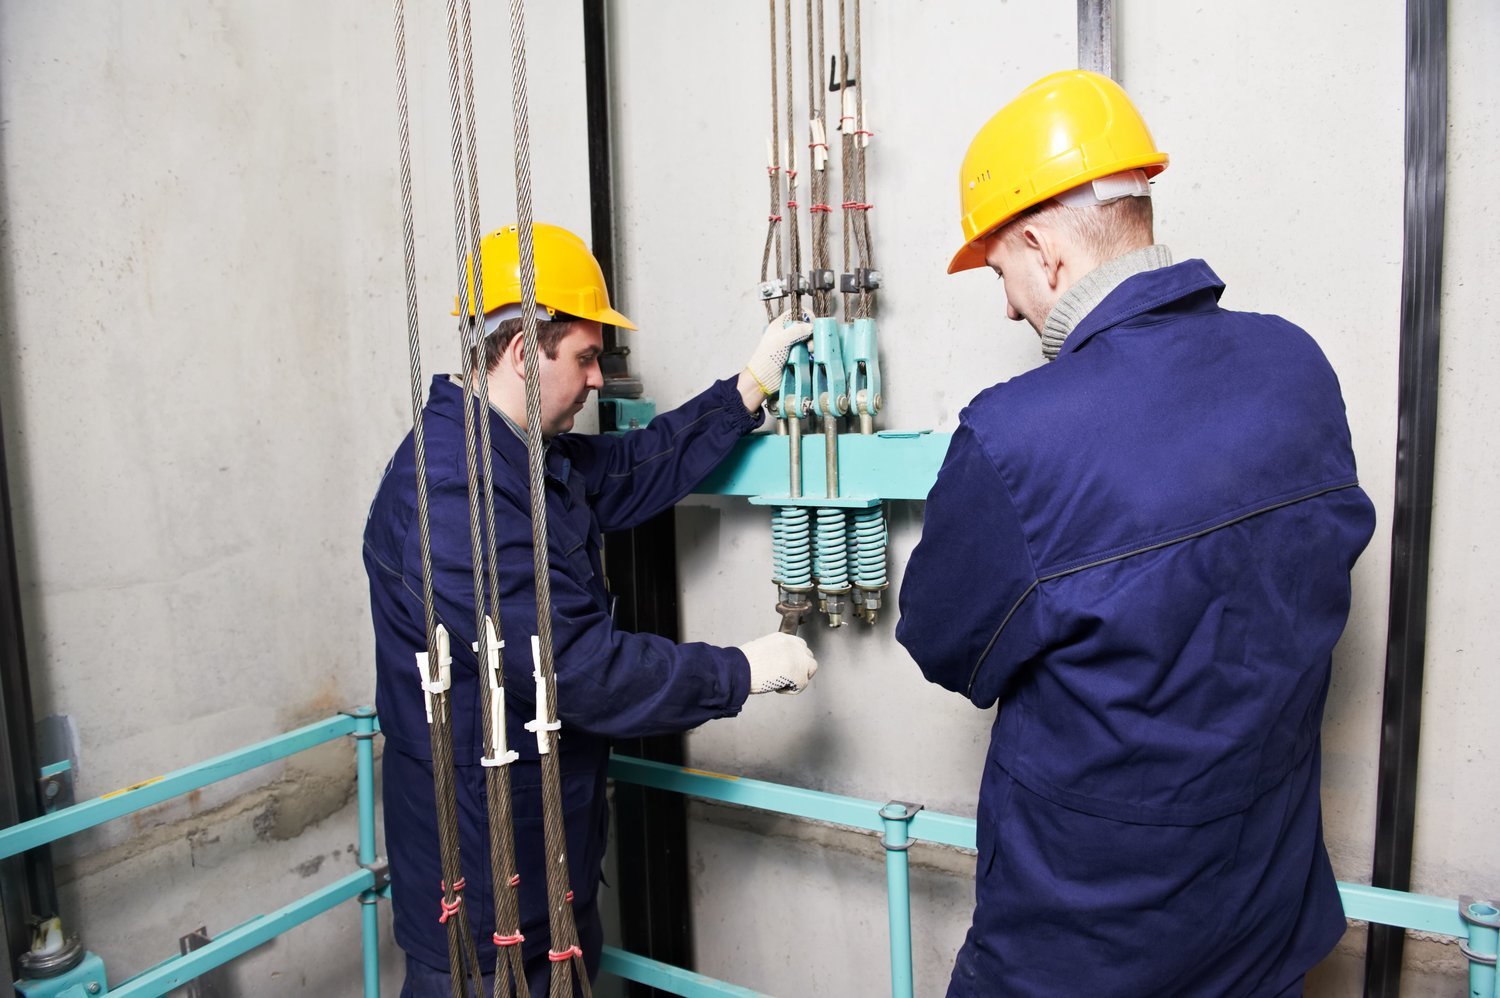 Elevator Repair NYC Service With Maintenance, Inspection And Installation